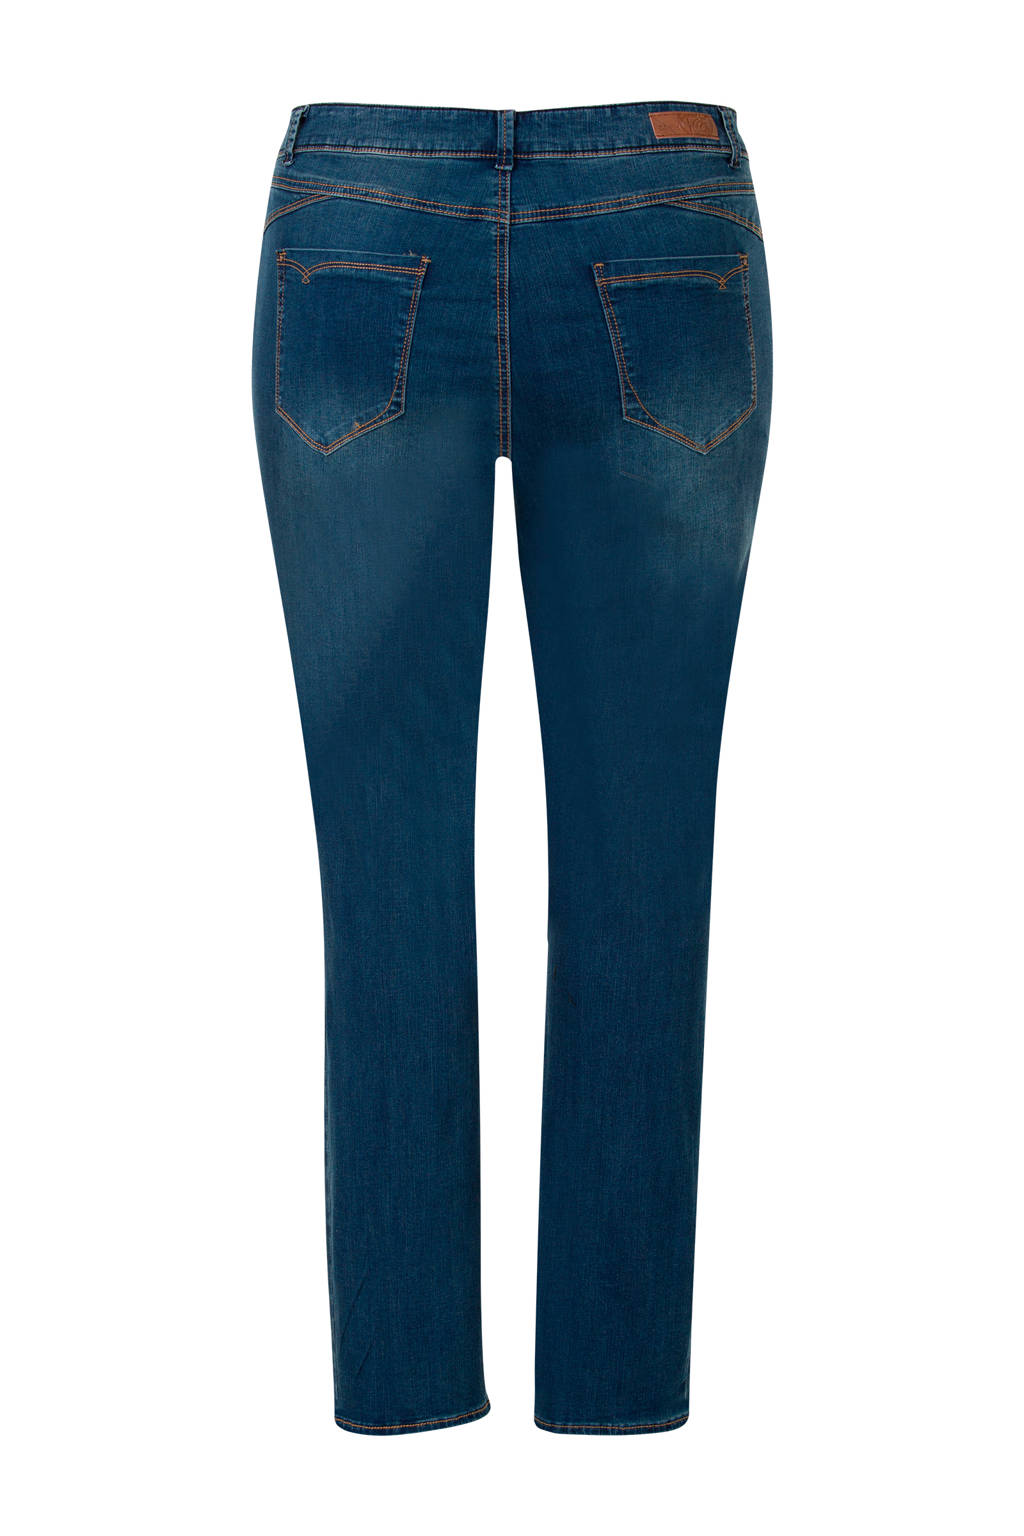 Etam Cropped Jeans Slim Fit Jackie Miss Plus H6qPP